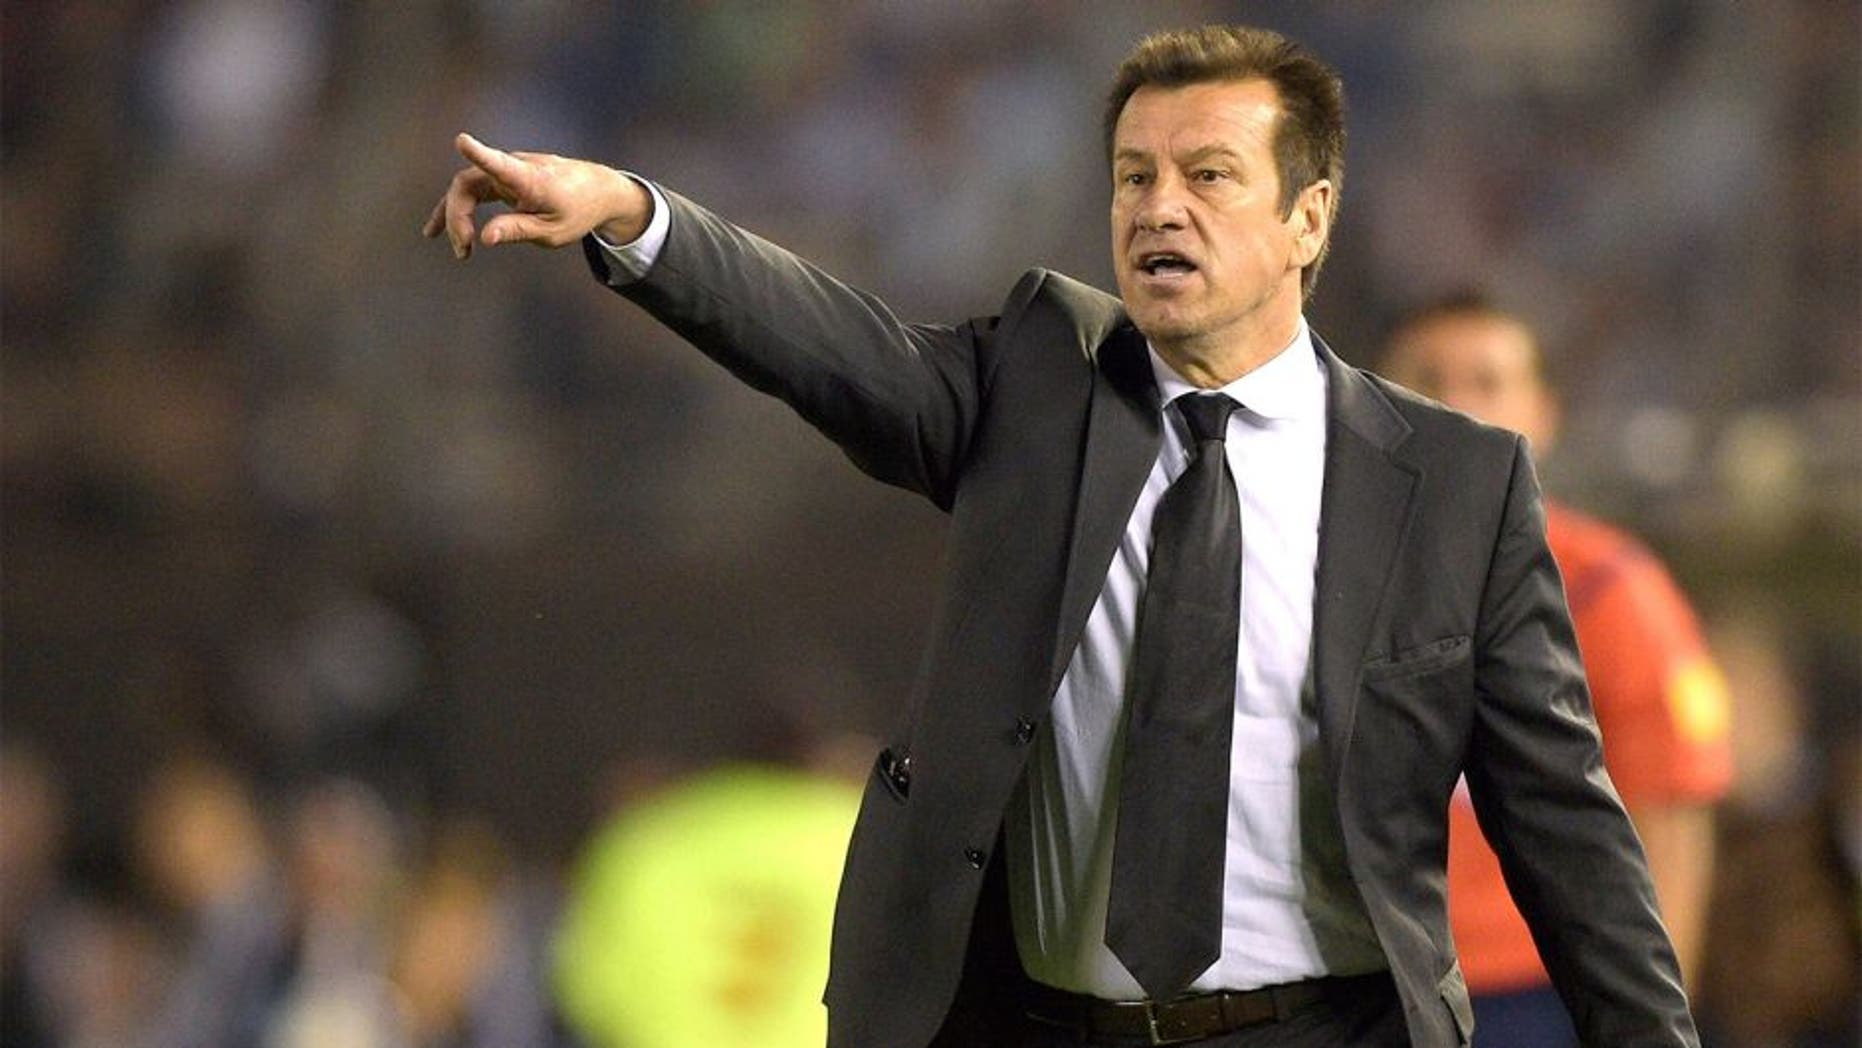 Brazil's coach Dunga gestures during the Russia 2018 FIFA World Cup South American Qualifiers football match against Argentina , in Buenos Aires, on November 13, 2015. AFP PHOTO / JUAN MABROMATA (Photo credit should read JUAN MABROMATA/AFP/Getty Images)